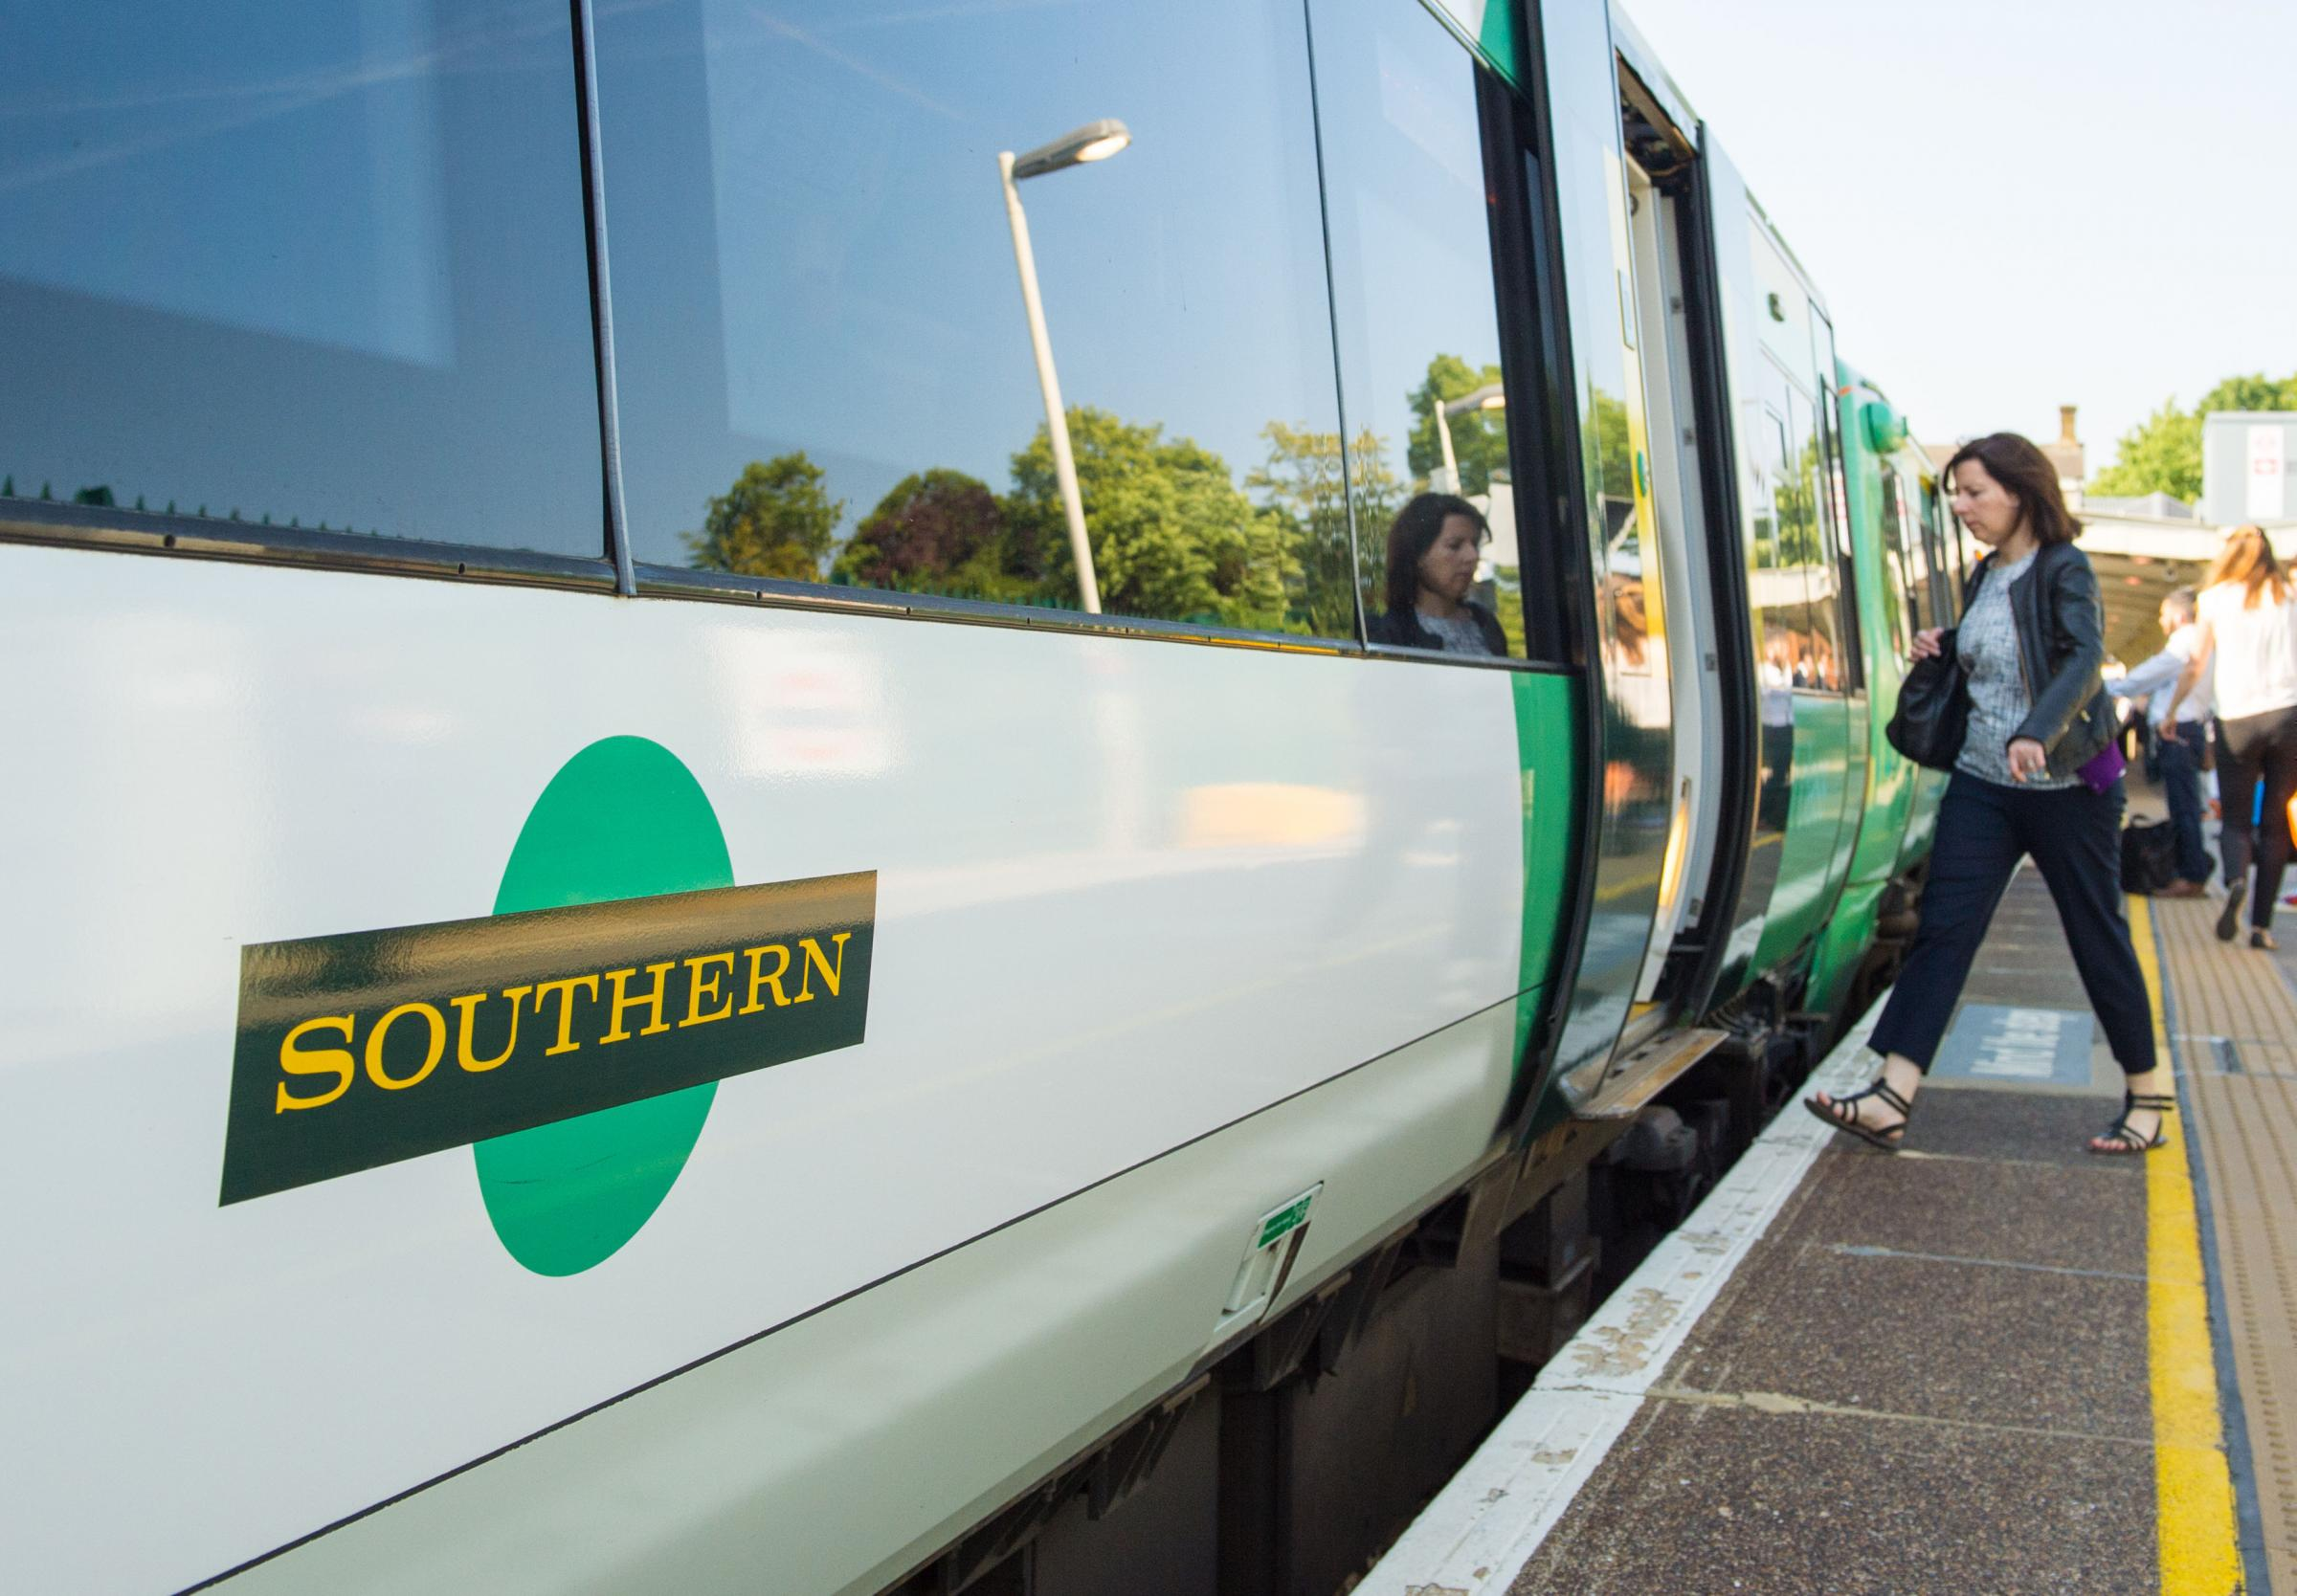 File photo dated 11/06/15 of a Southern rail train. House price growth has slowed to around a third of its previous levels in areas where commuters have been affected by the Southern railway strikes, according to a property website. PRESS ASSOCIATION Phot